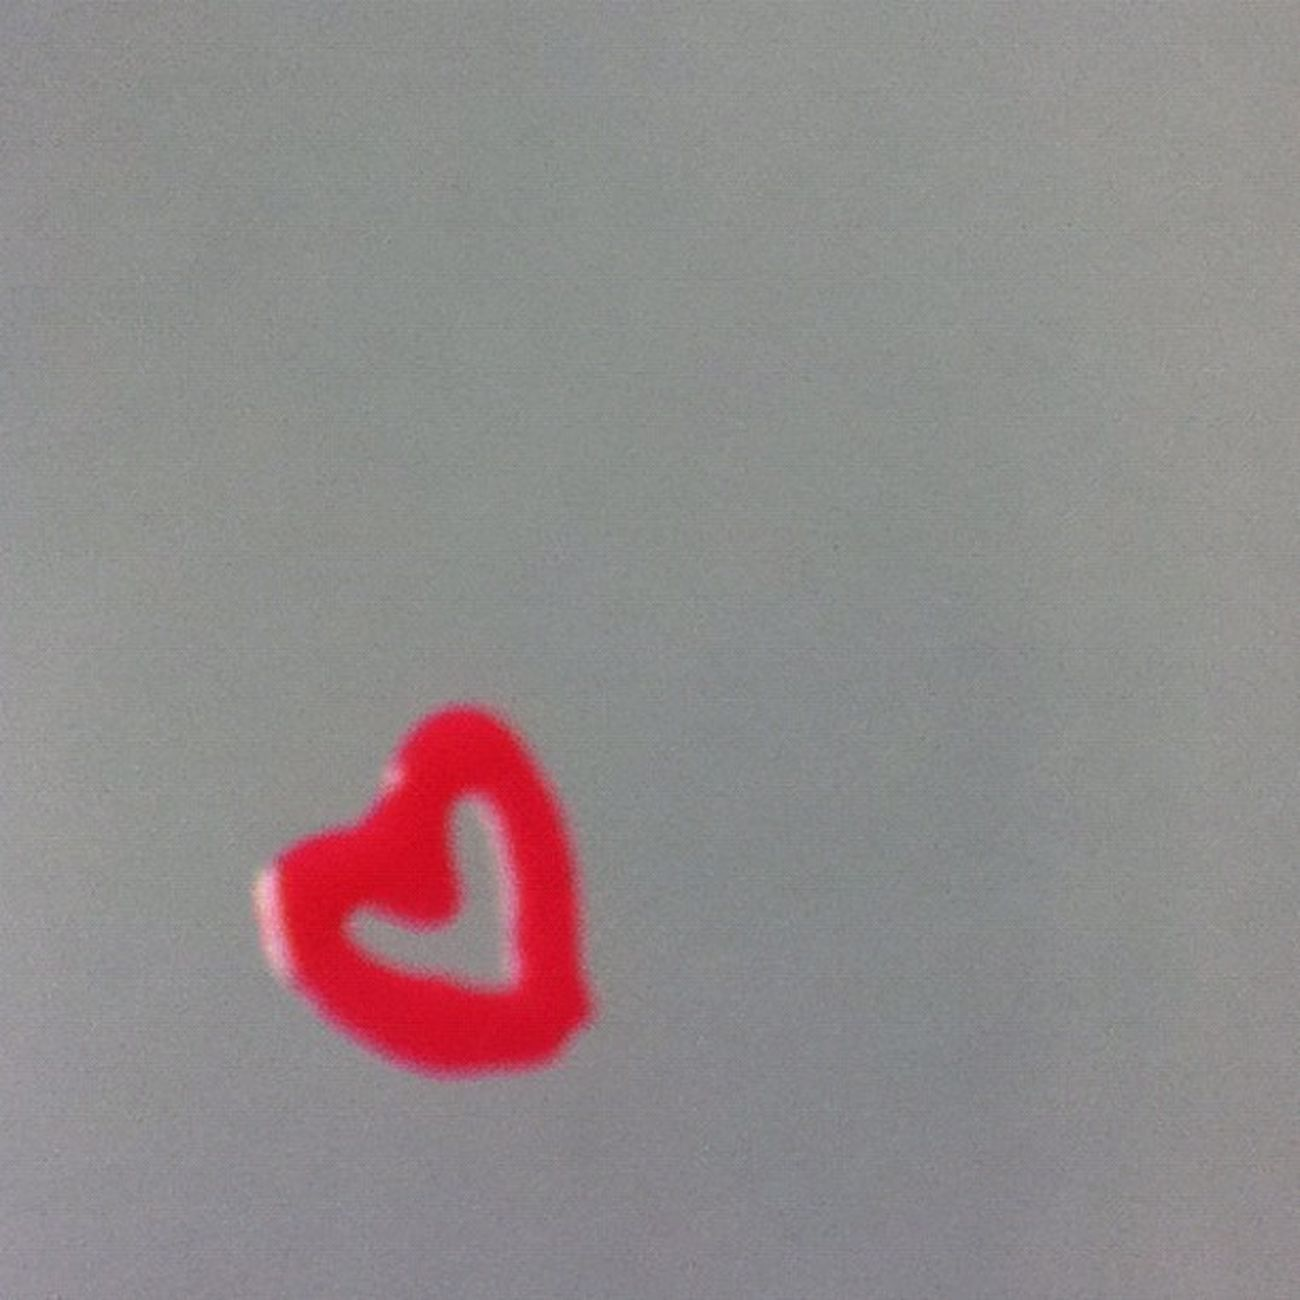 Bored in mathsNeon Neonheart Bright Hearts lovehearts